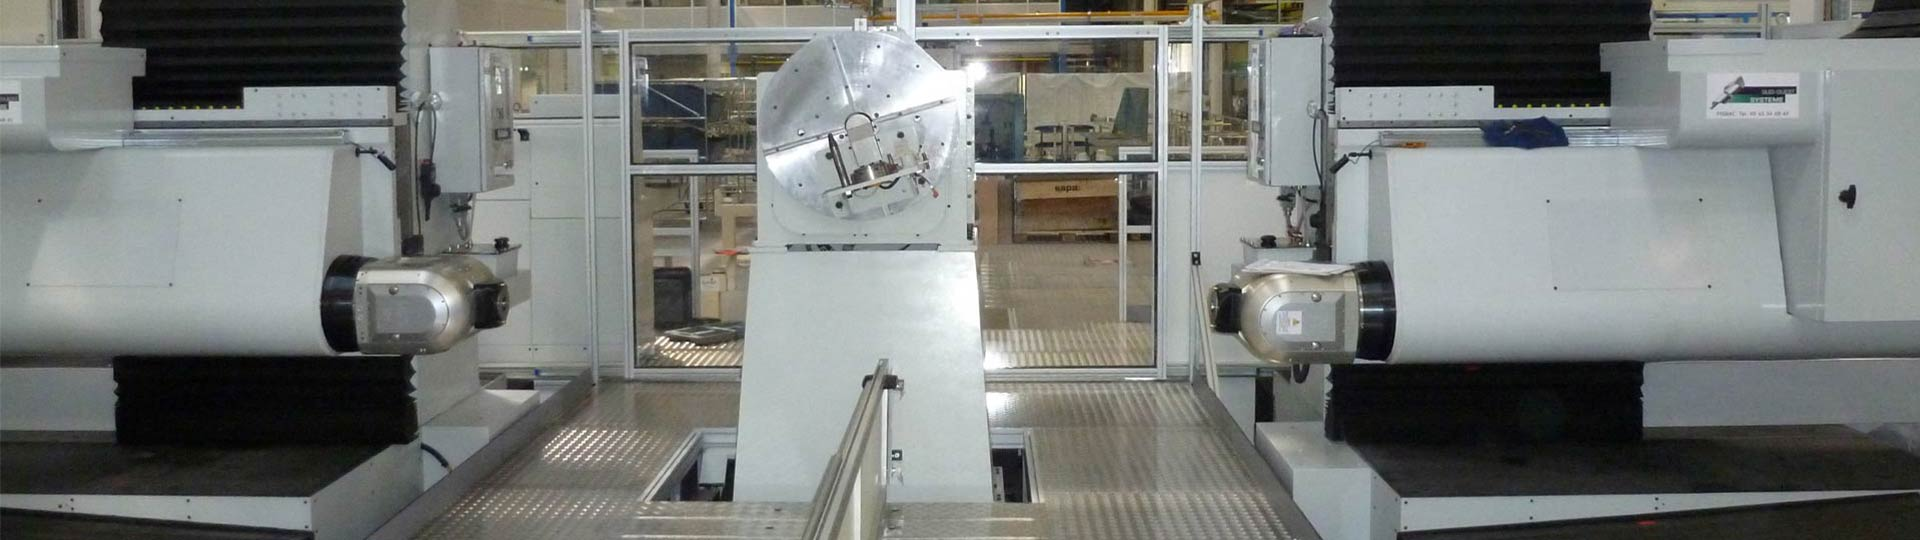 slide-sud-ouest-systeme-machine-speciale